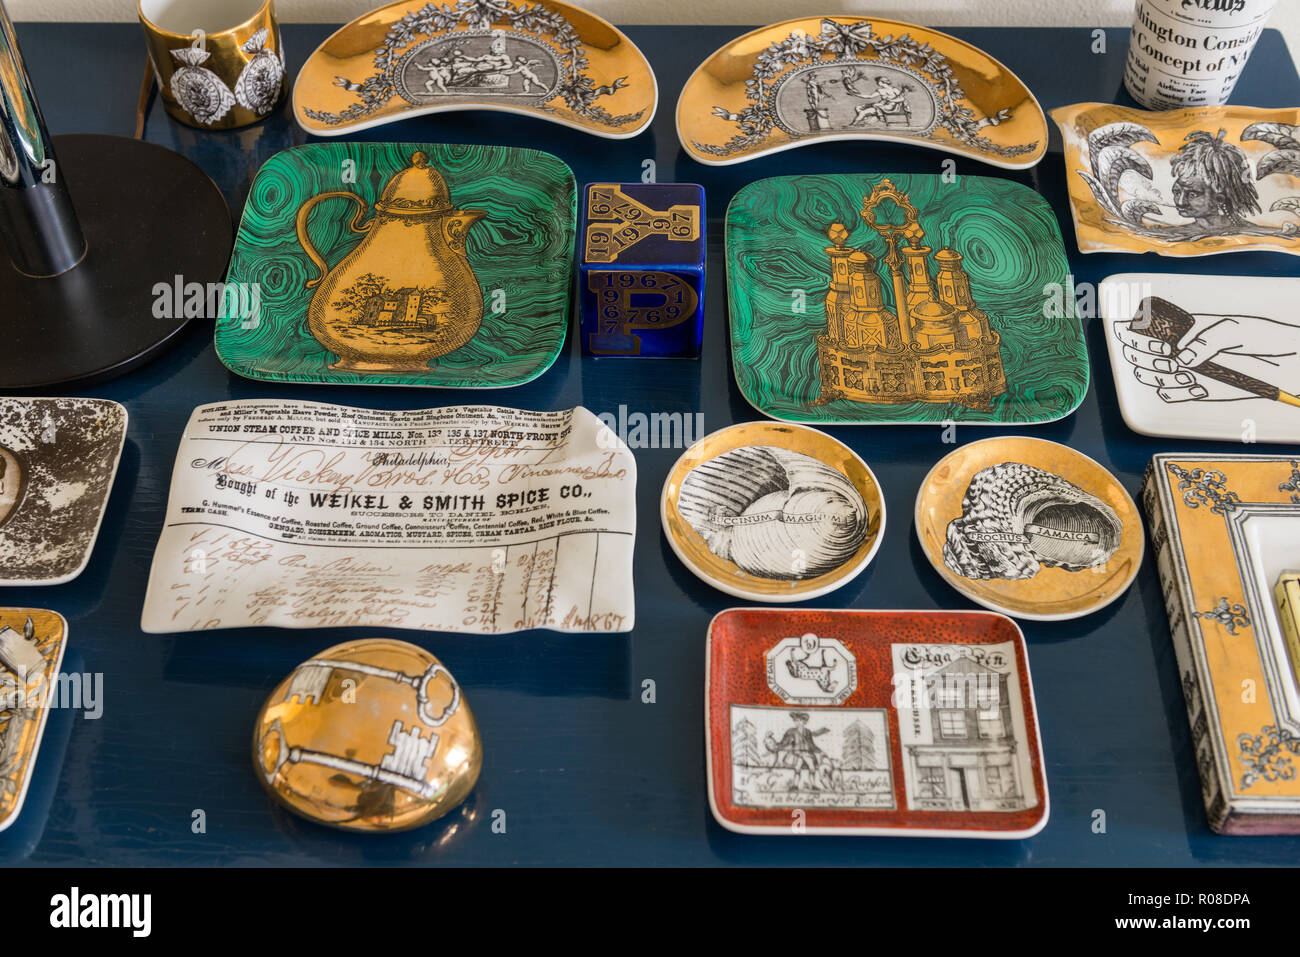 Collection of plates - Stock Image